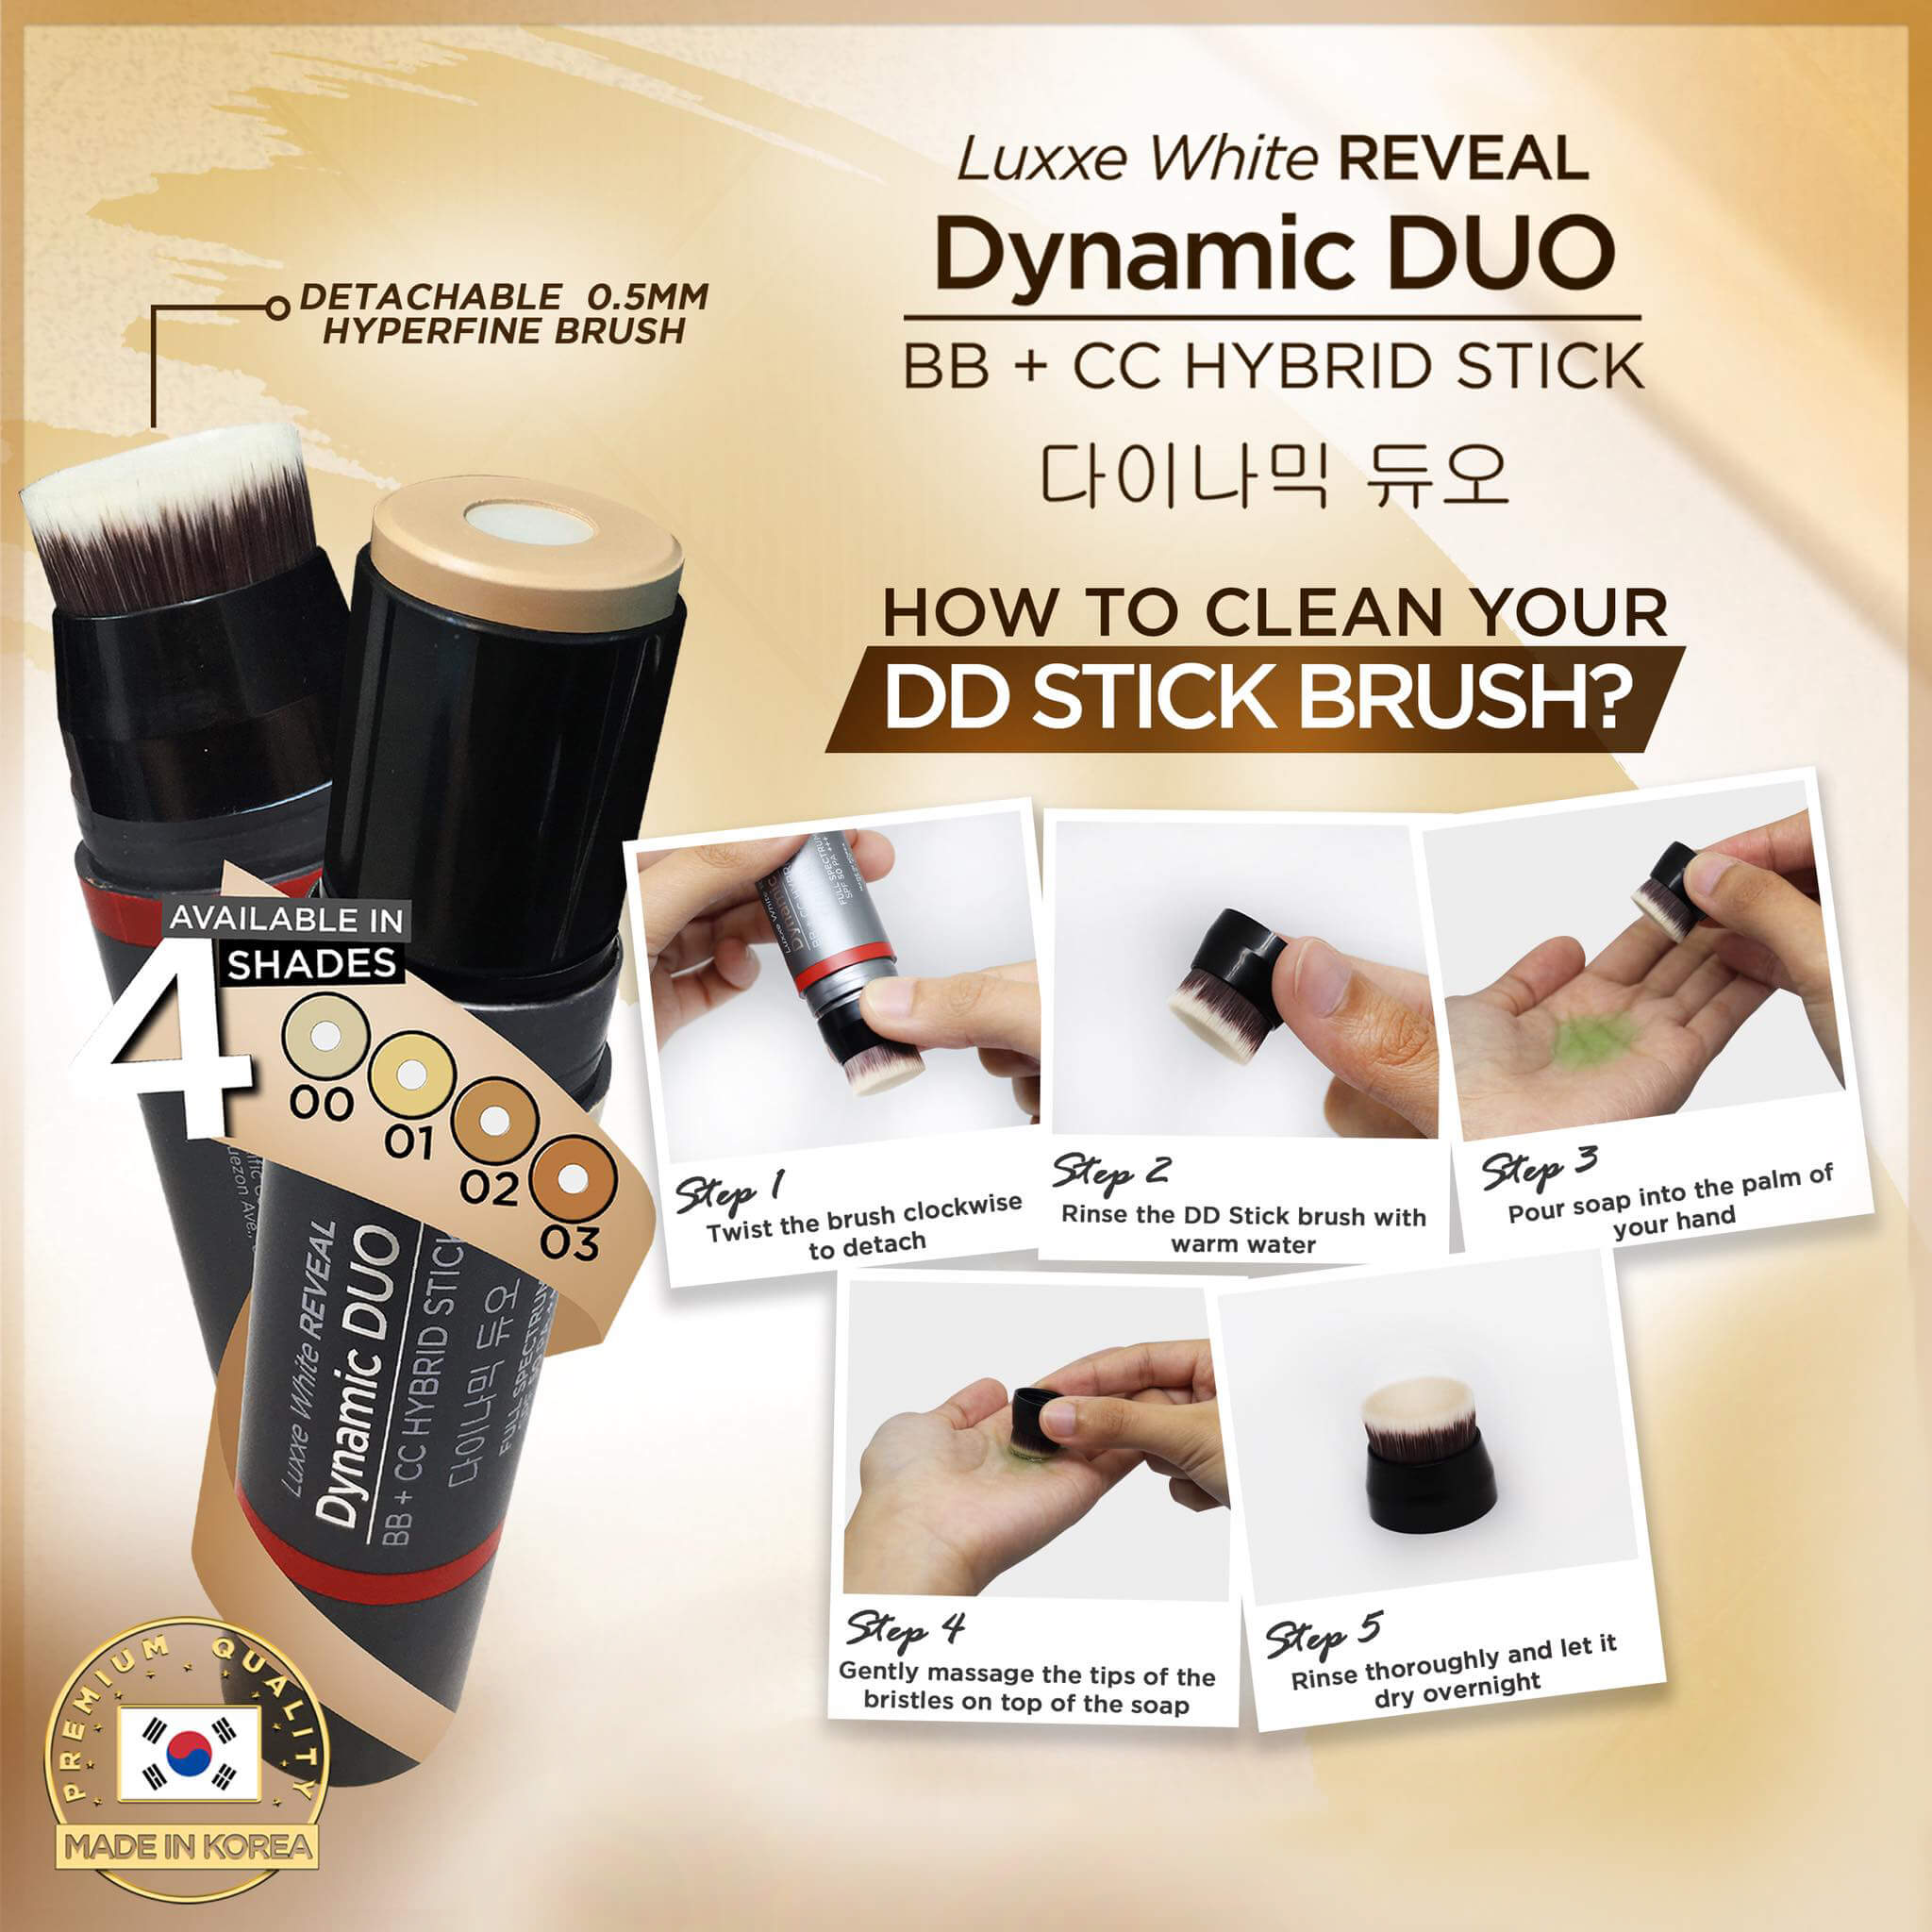 how to clean your dd stick brush